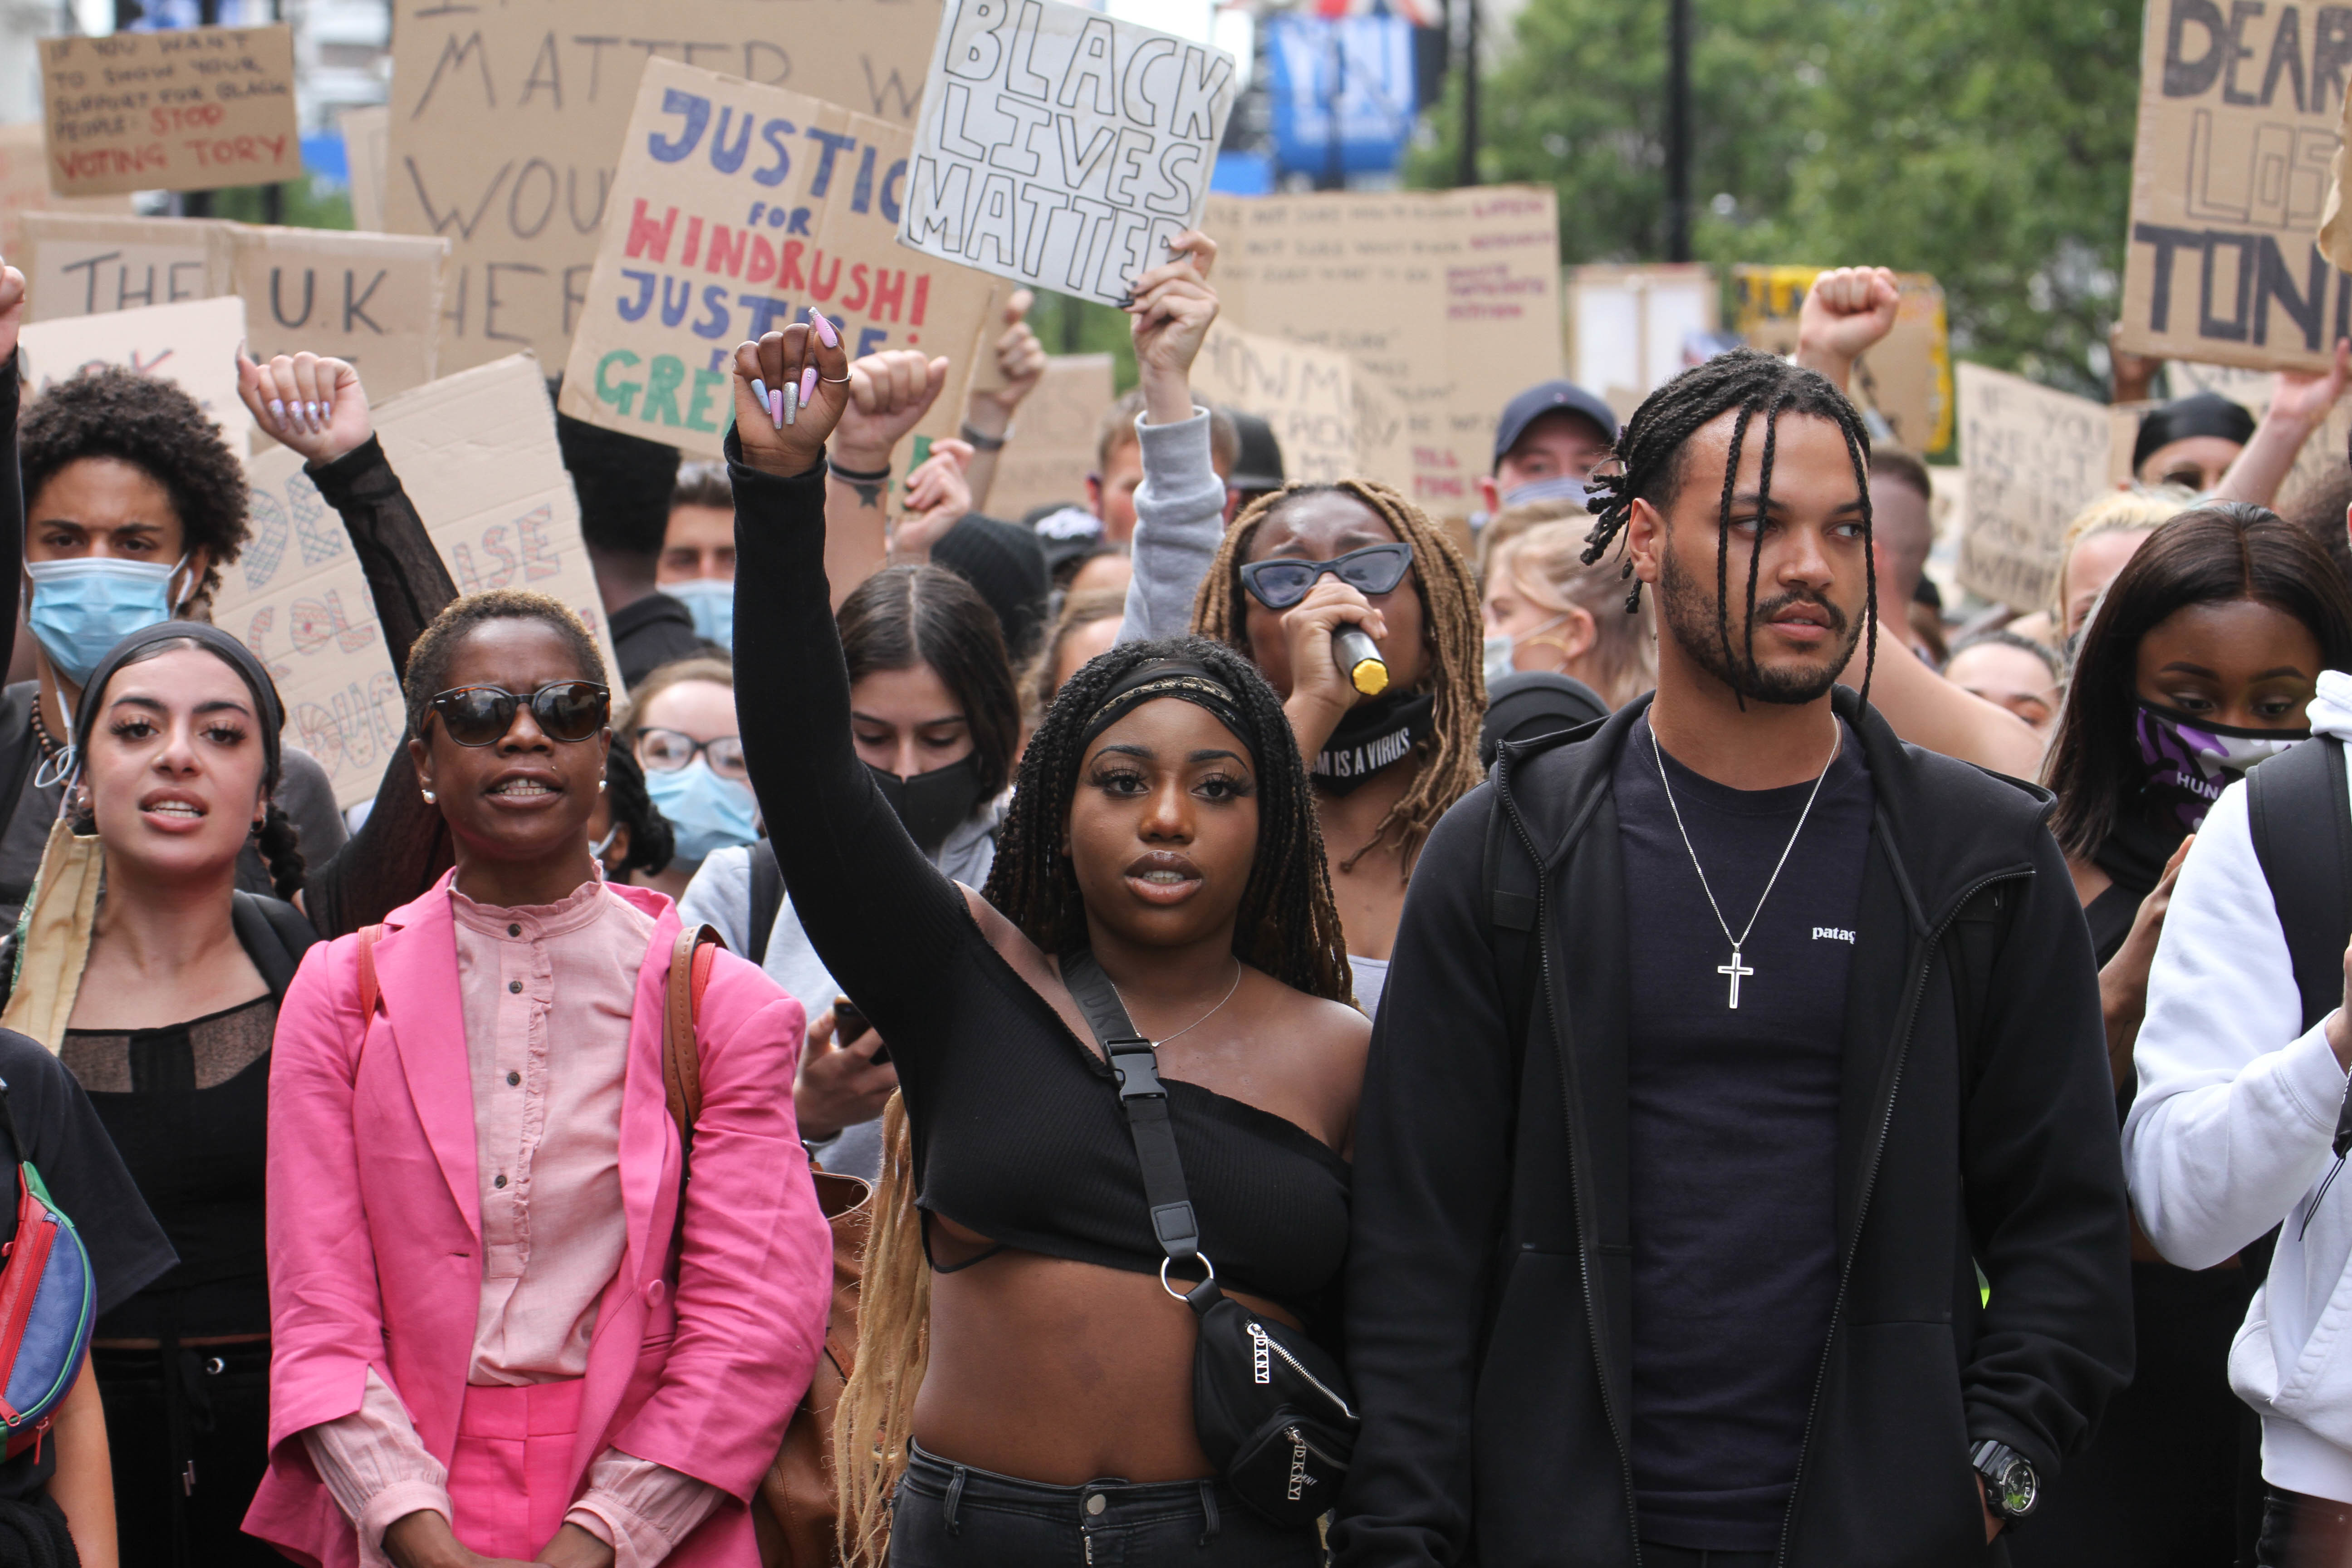 BLM demonstrators march through Oxford Street during the demonstration. Black Lives Matter protests continue in The UK since the death of George Floyd at the hands of police officer in Minneapolis. (Photo by David Mbiyu / SOPA Images/Sipa USA)